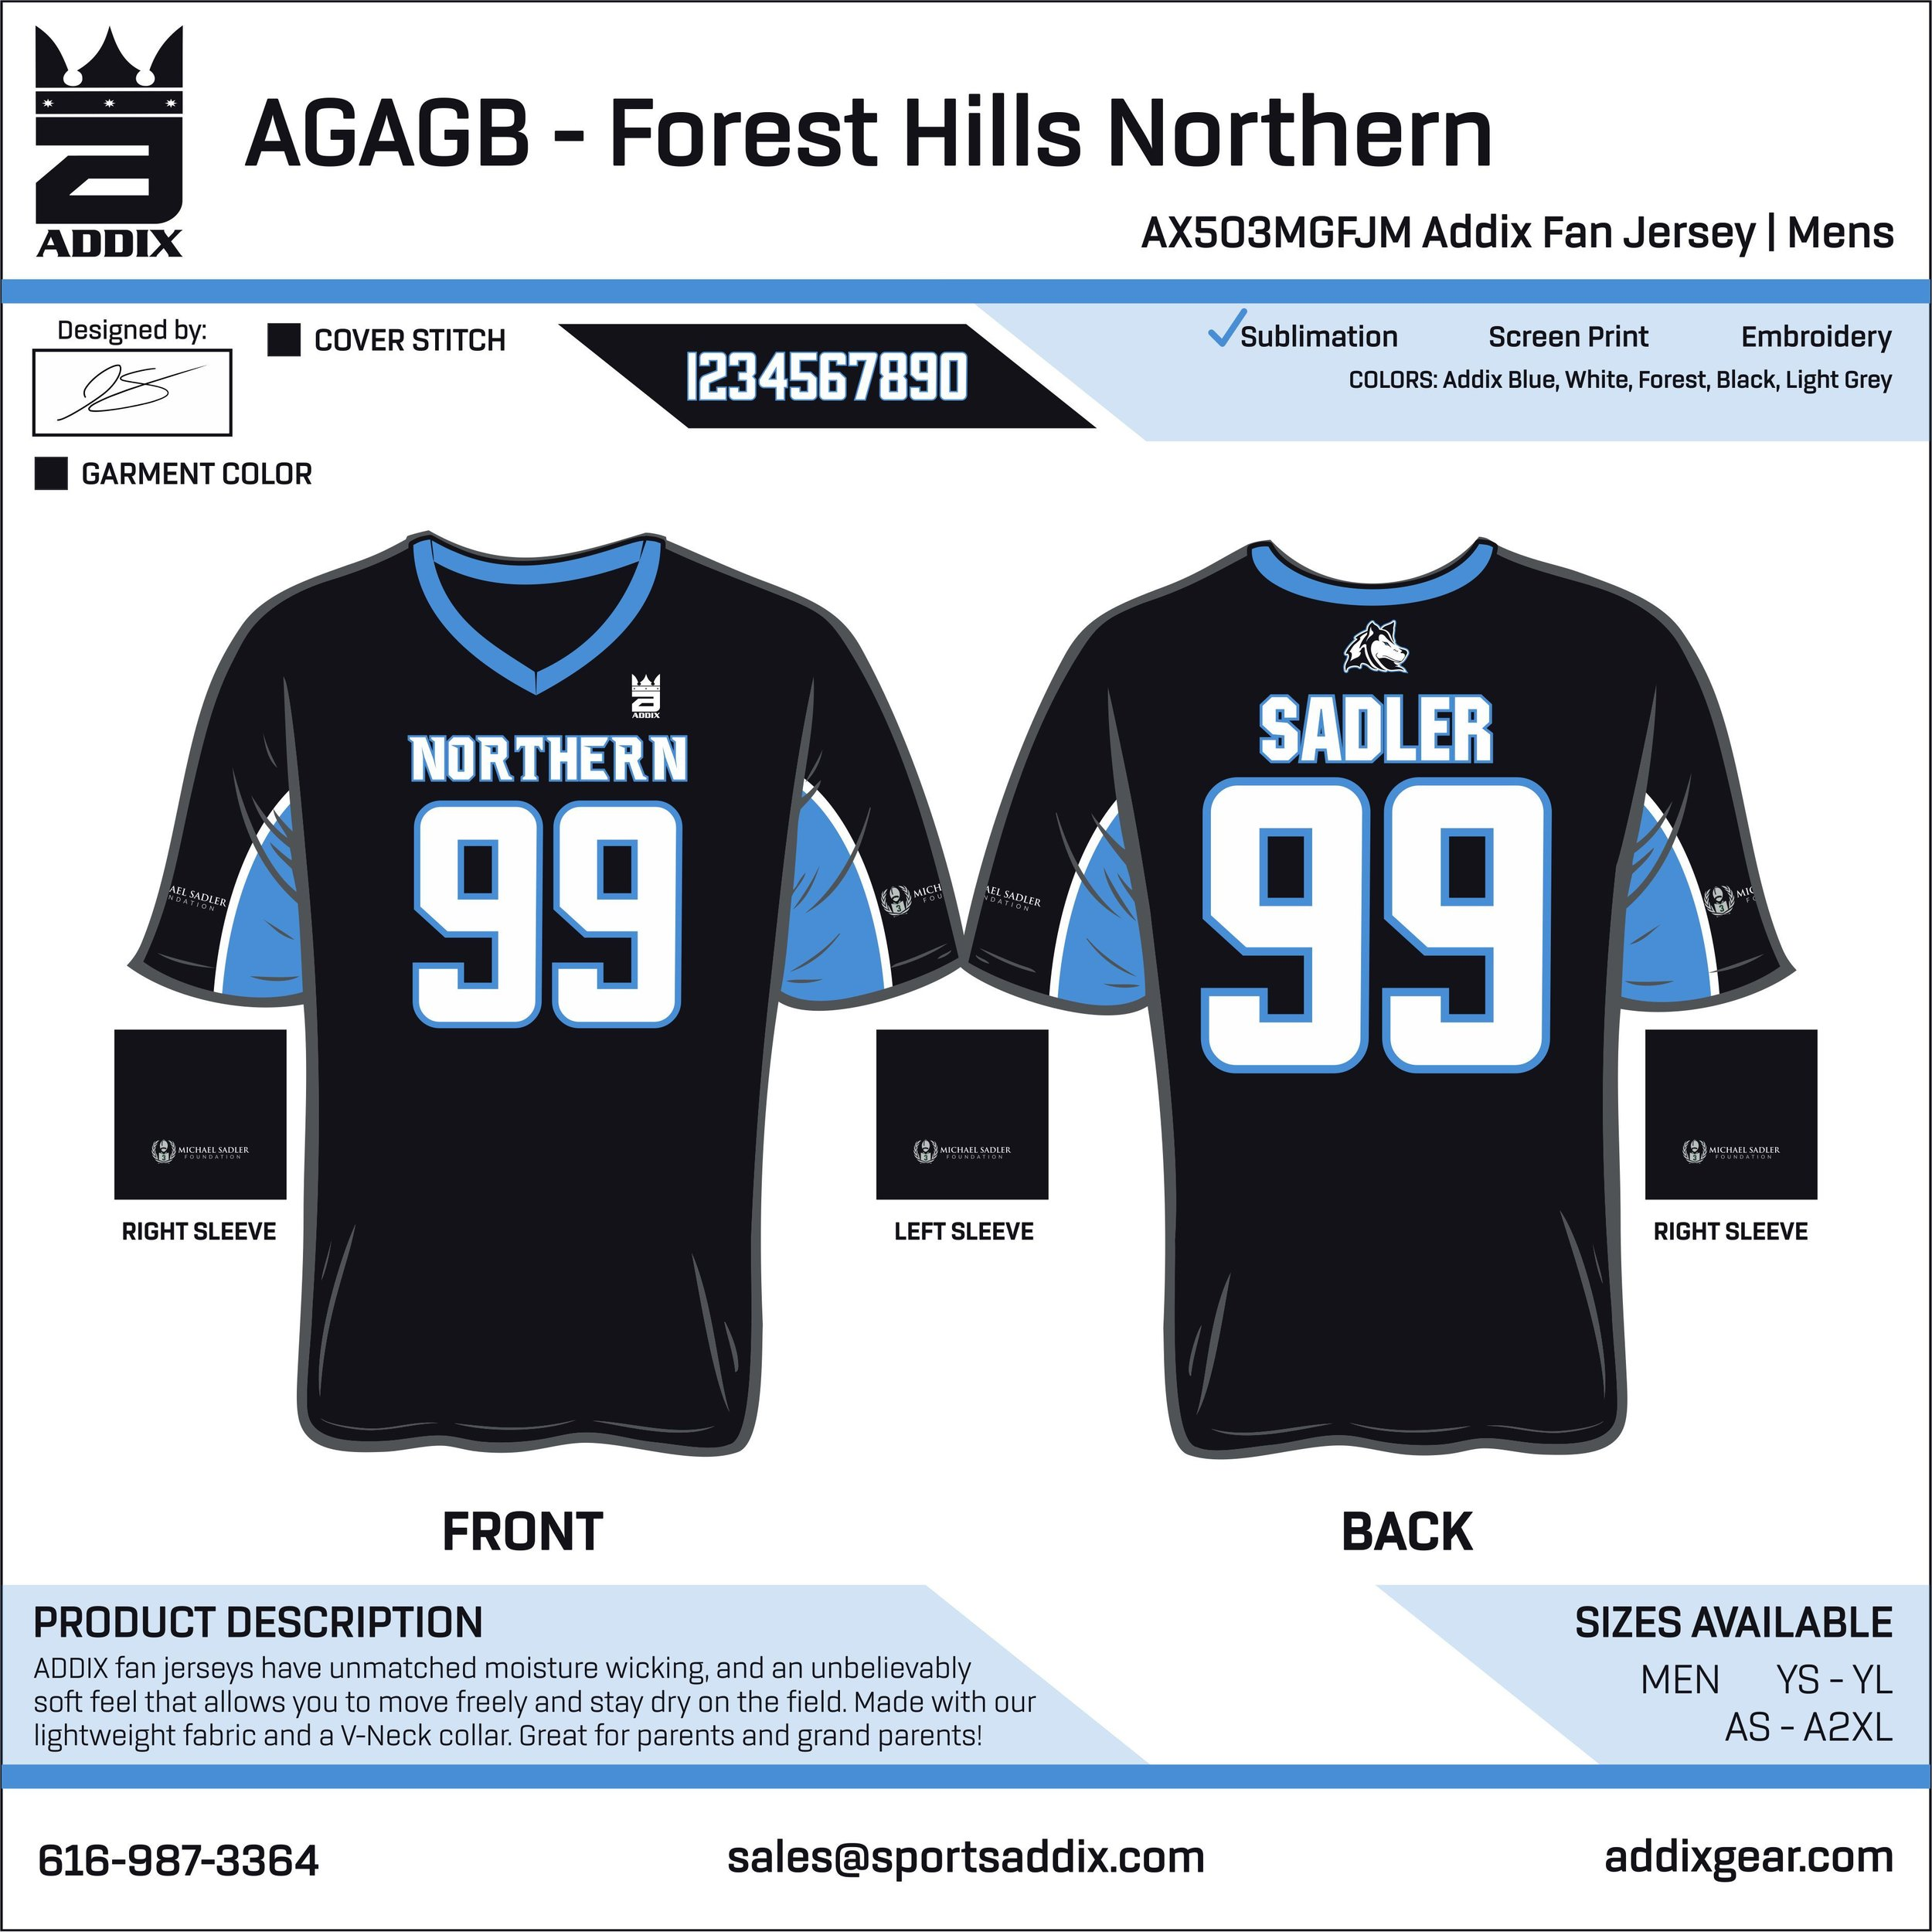 AGAGB - Forest Hills Northern_2018_8-24_JE_Fan Jersey.jpg